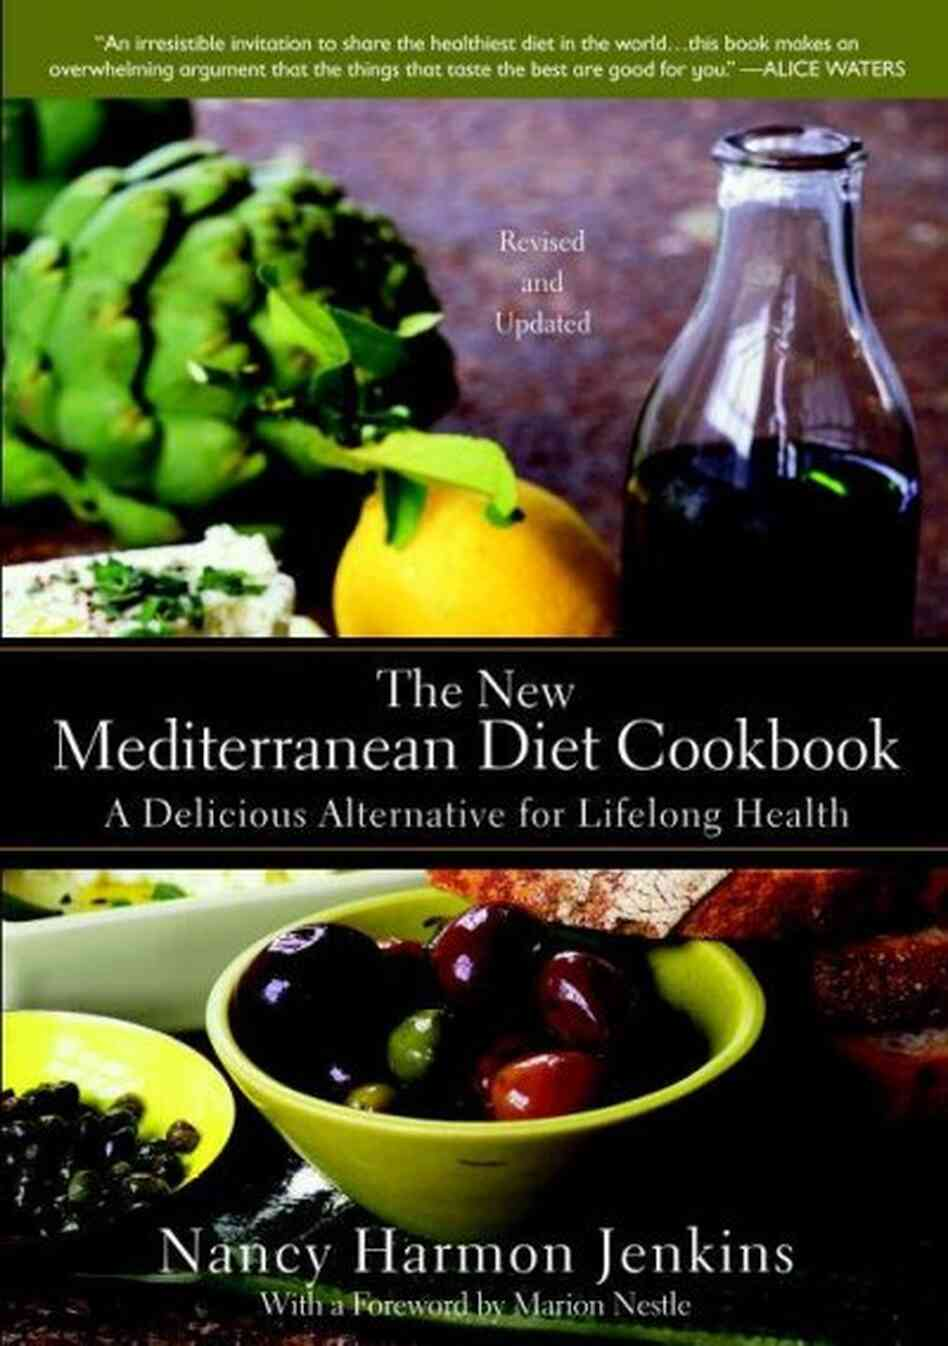 The New Mediterranean Diet Cookbook : NPR